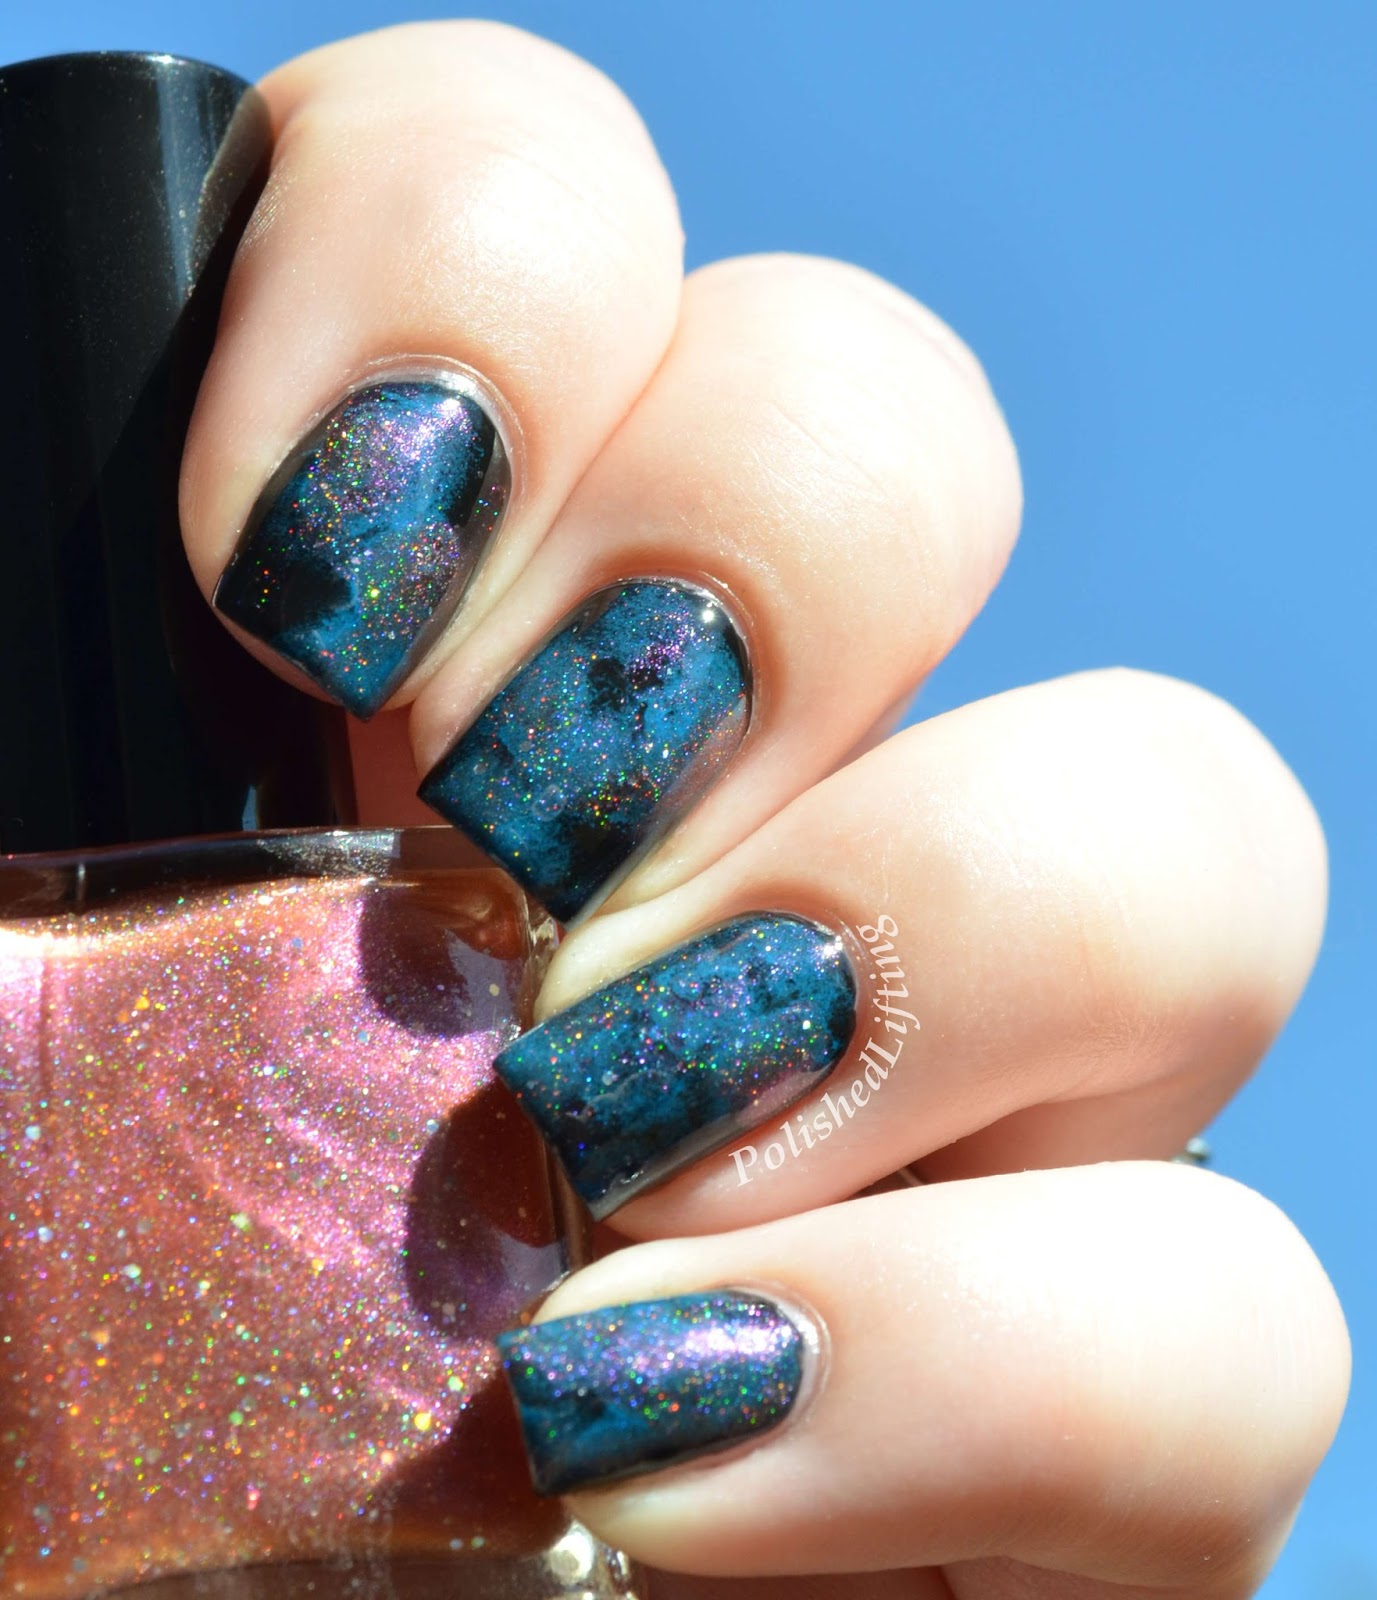 Polished Lifting: Twin Galaxy Mani with Shelby Lou Nails